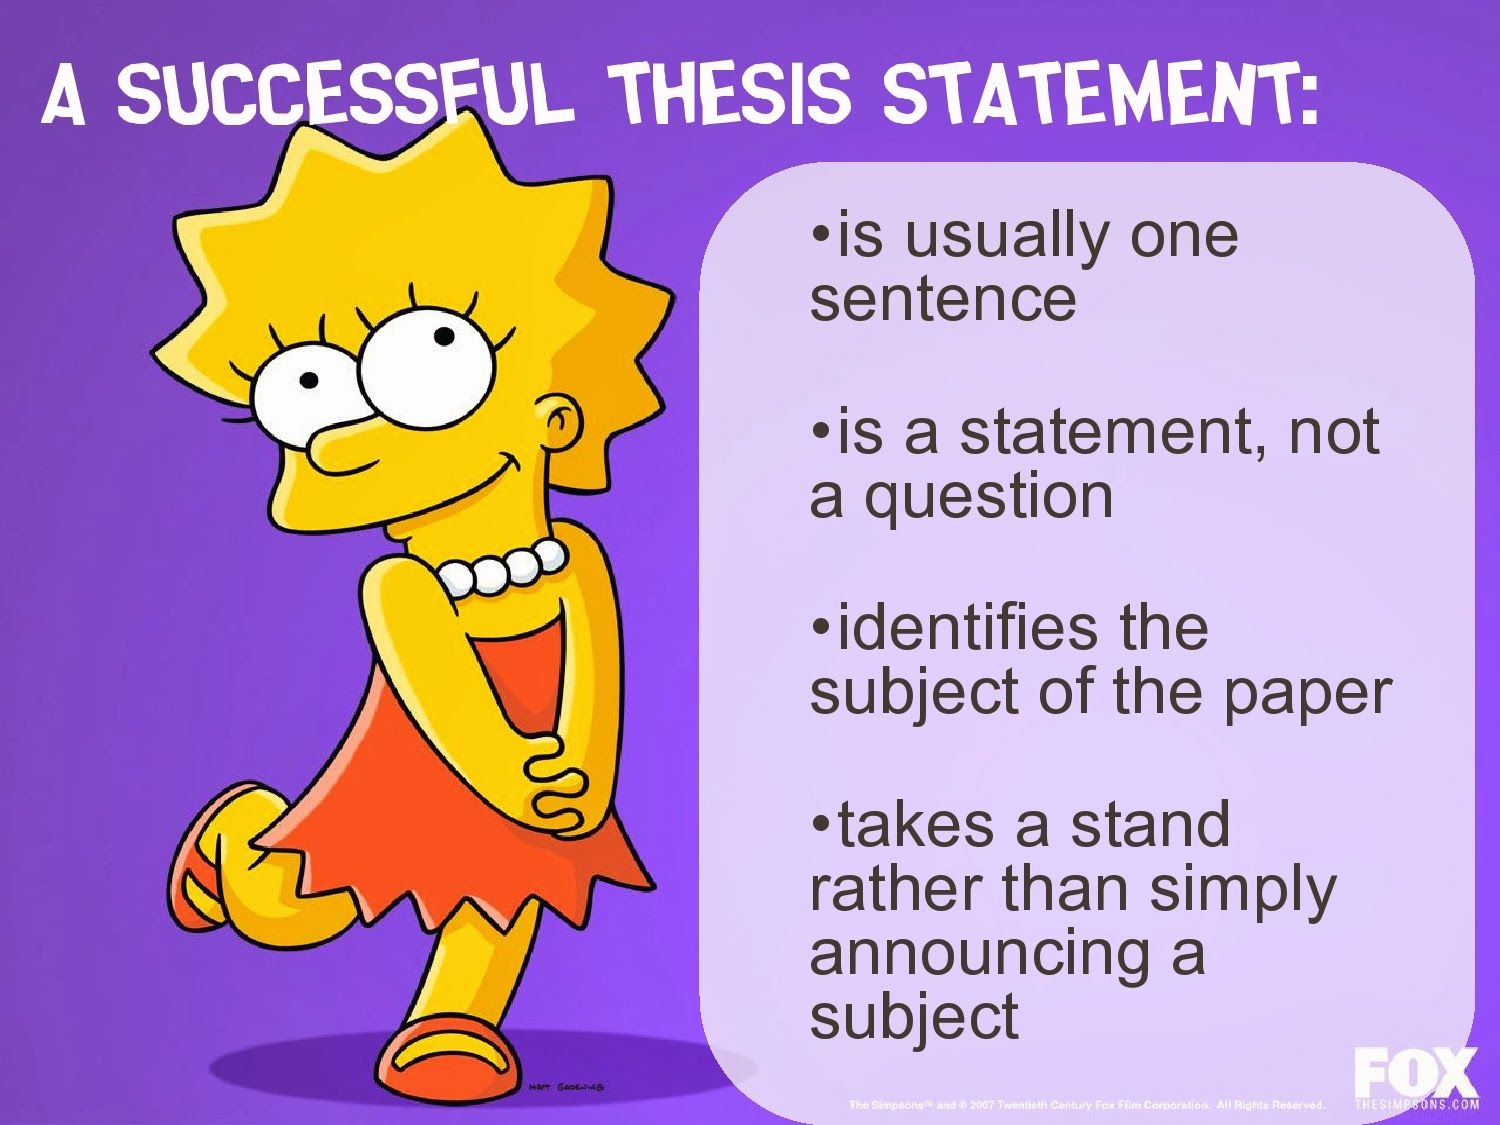 Essay About Science And Technology  Samples Of Essay Writing In English also Cheap Essay Papers Get Examples Of Good Thesis Statements Examples Of Thesis Statements For Narrative Essays